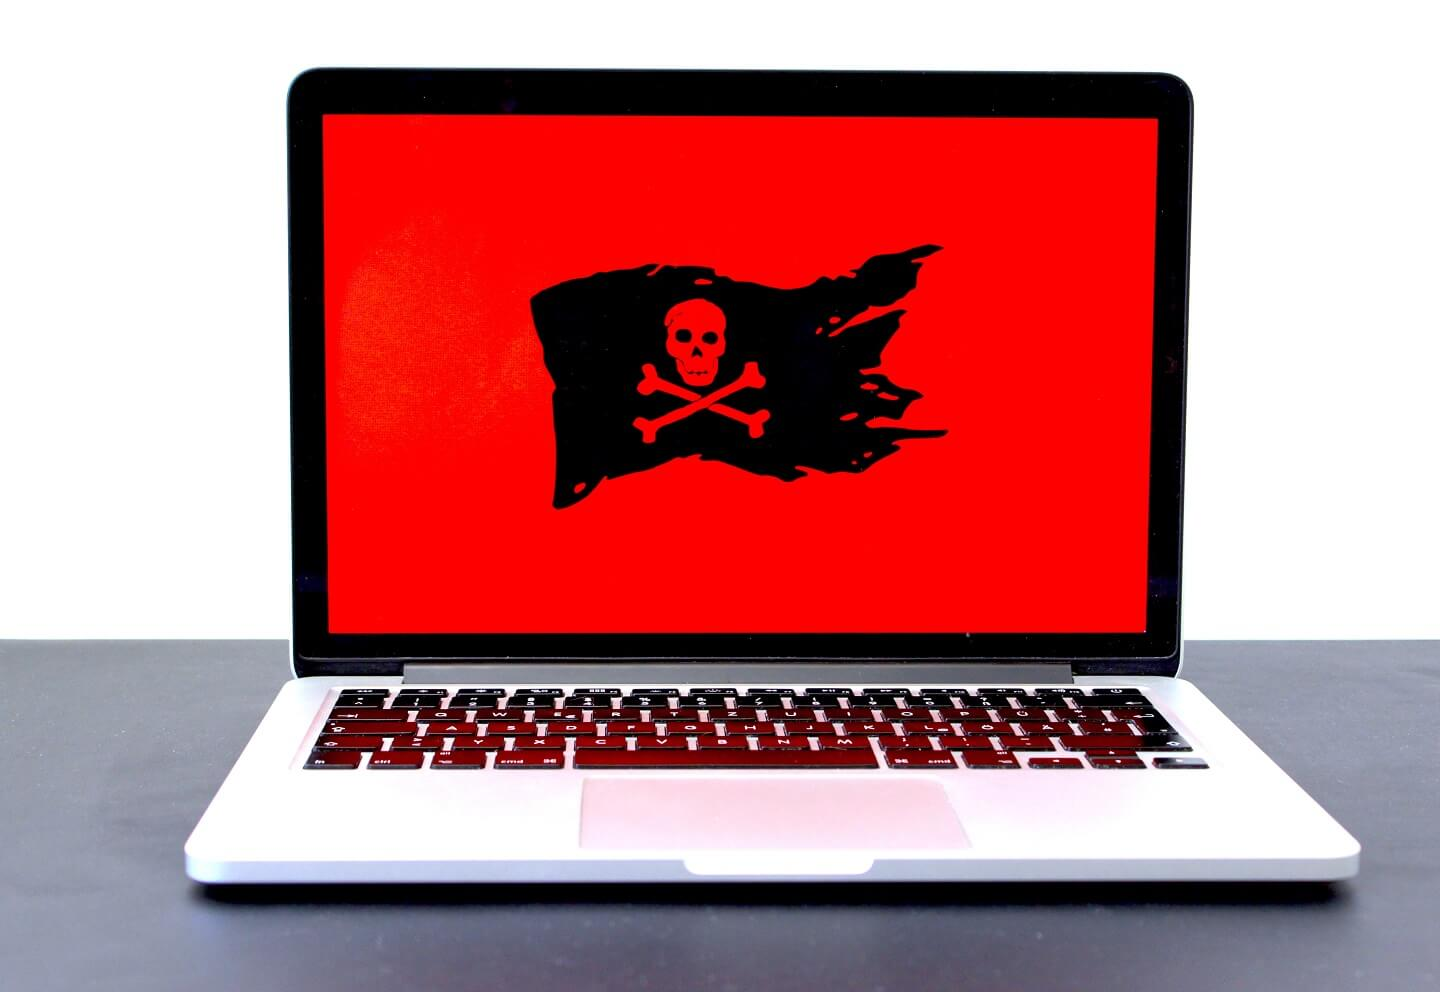 A laptop with a red screen with a pirate flag on it.